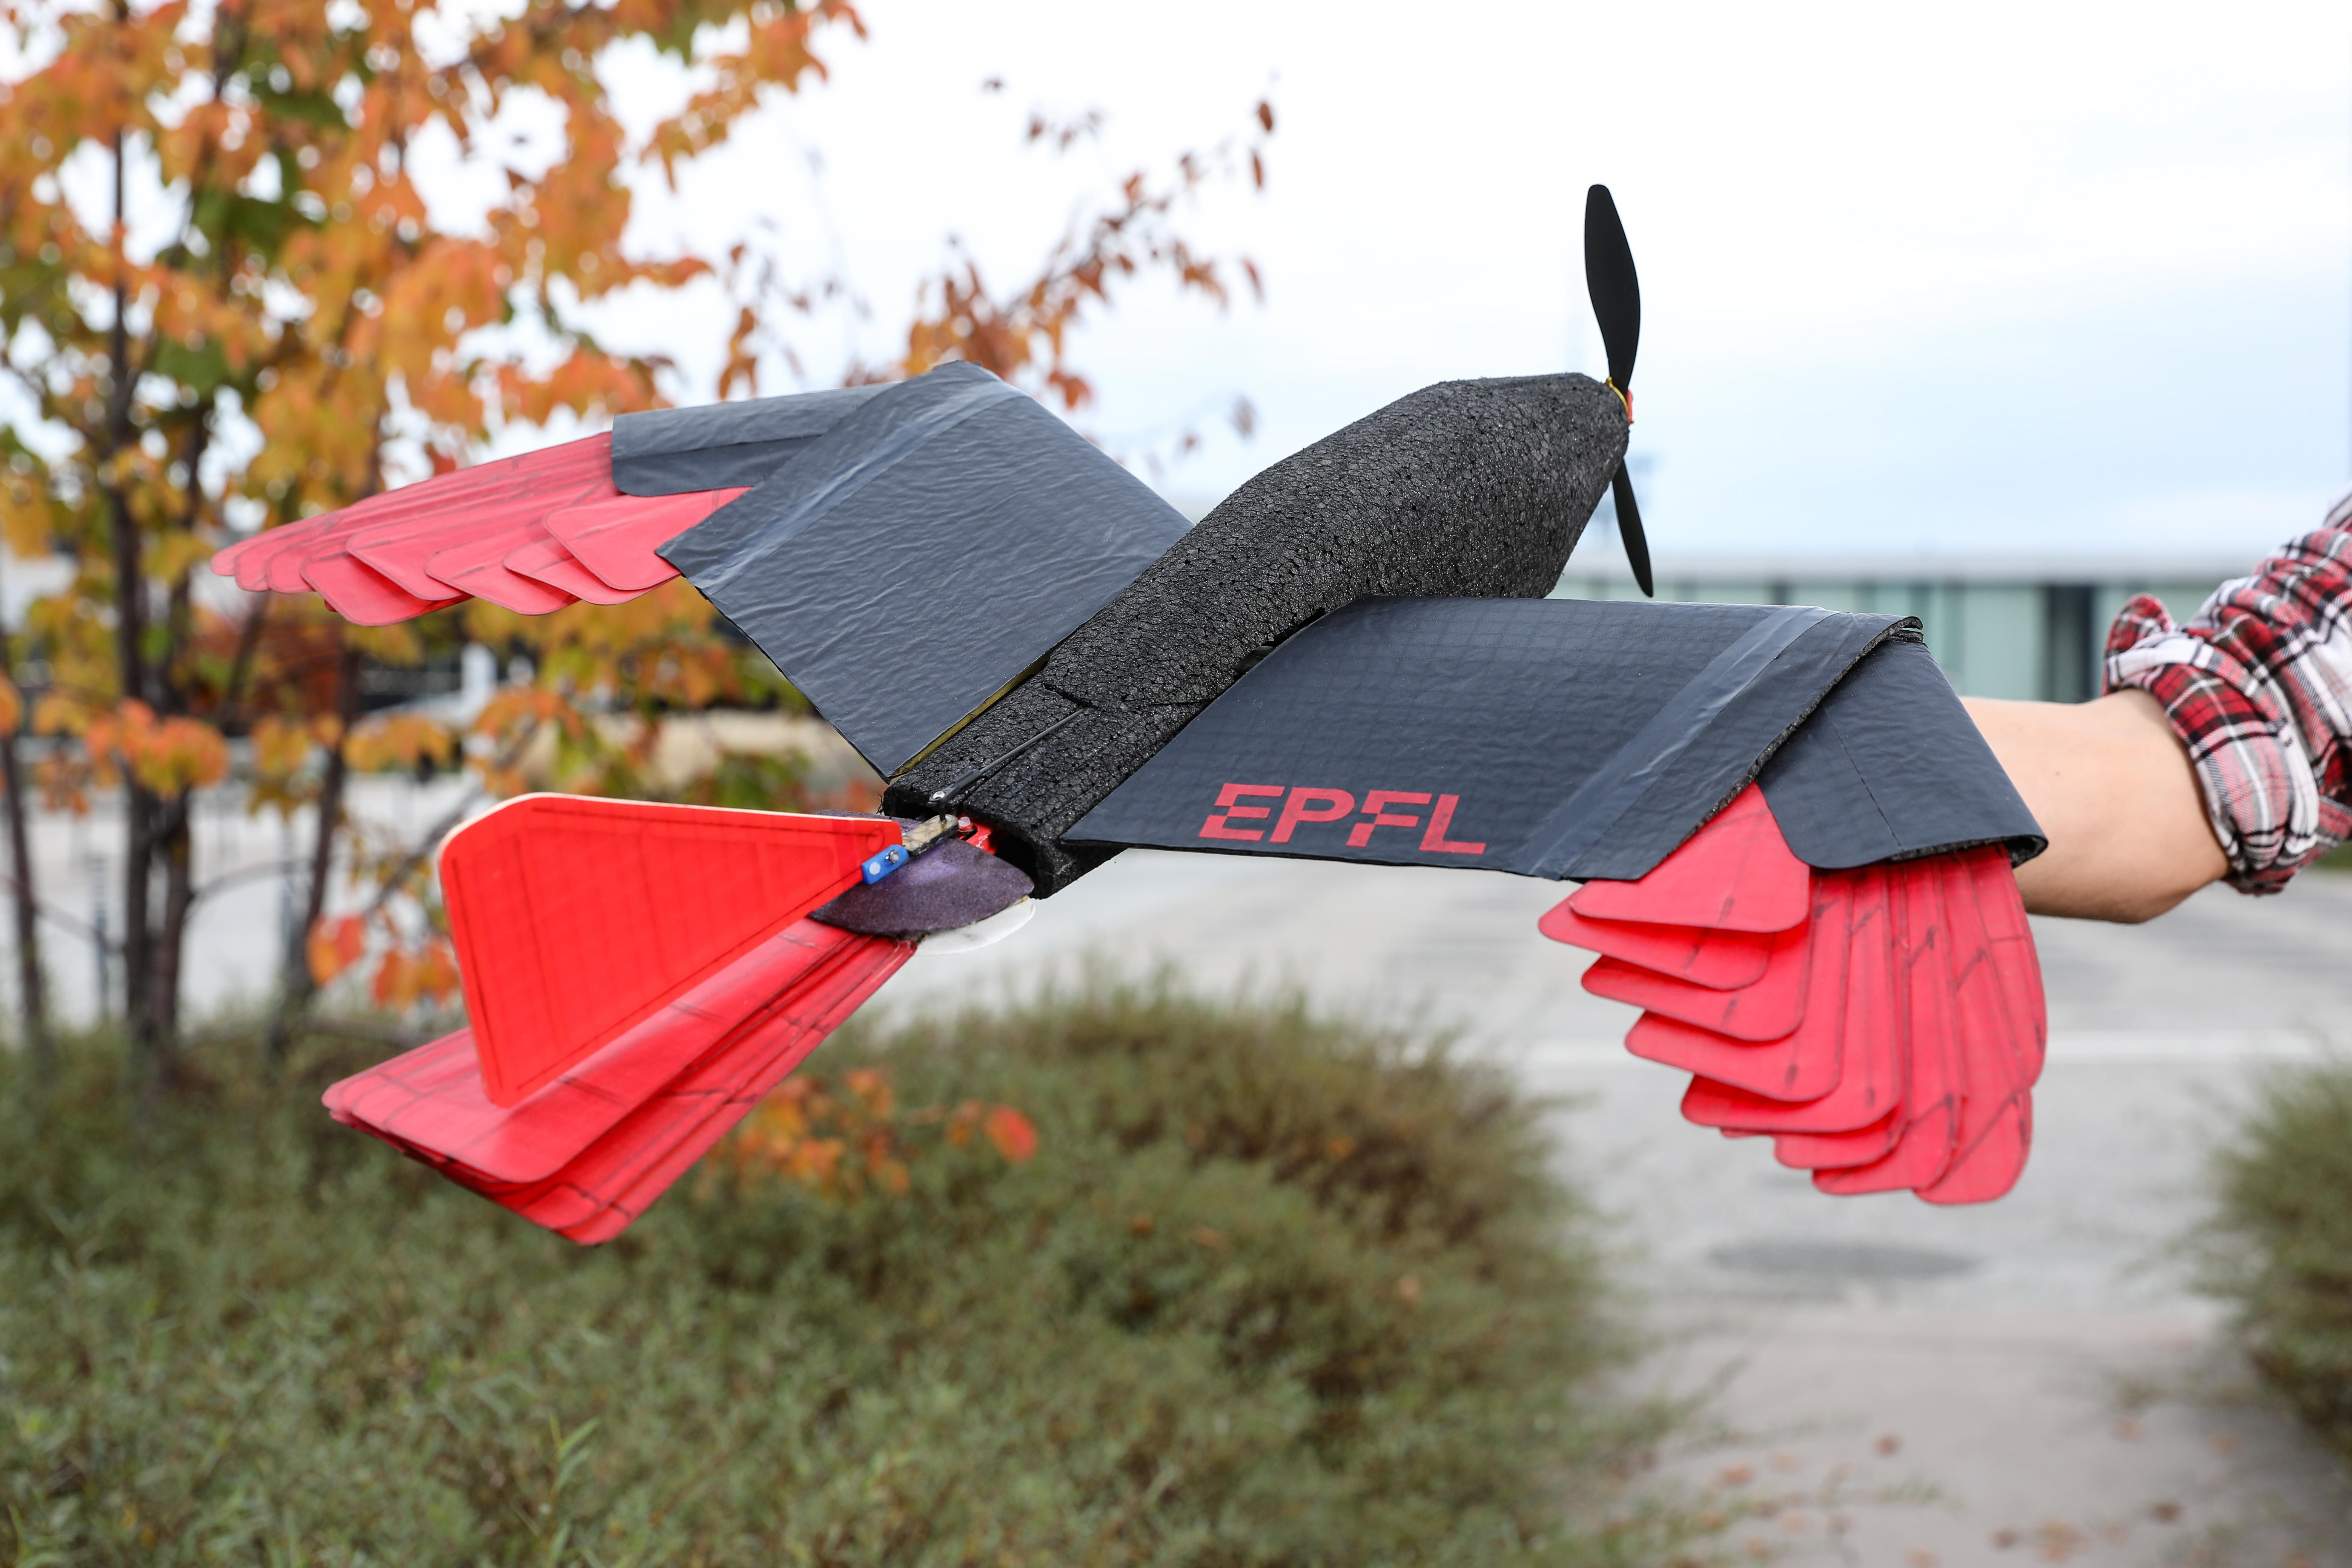 The new drone developed at EPFL, inspired by the goshawk raptor